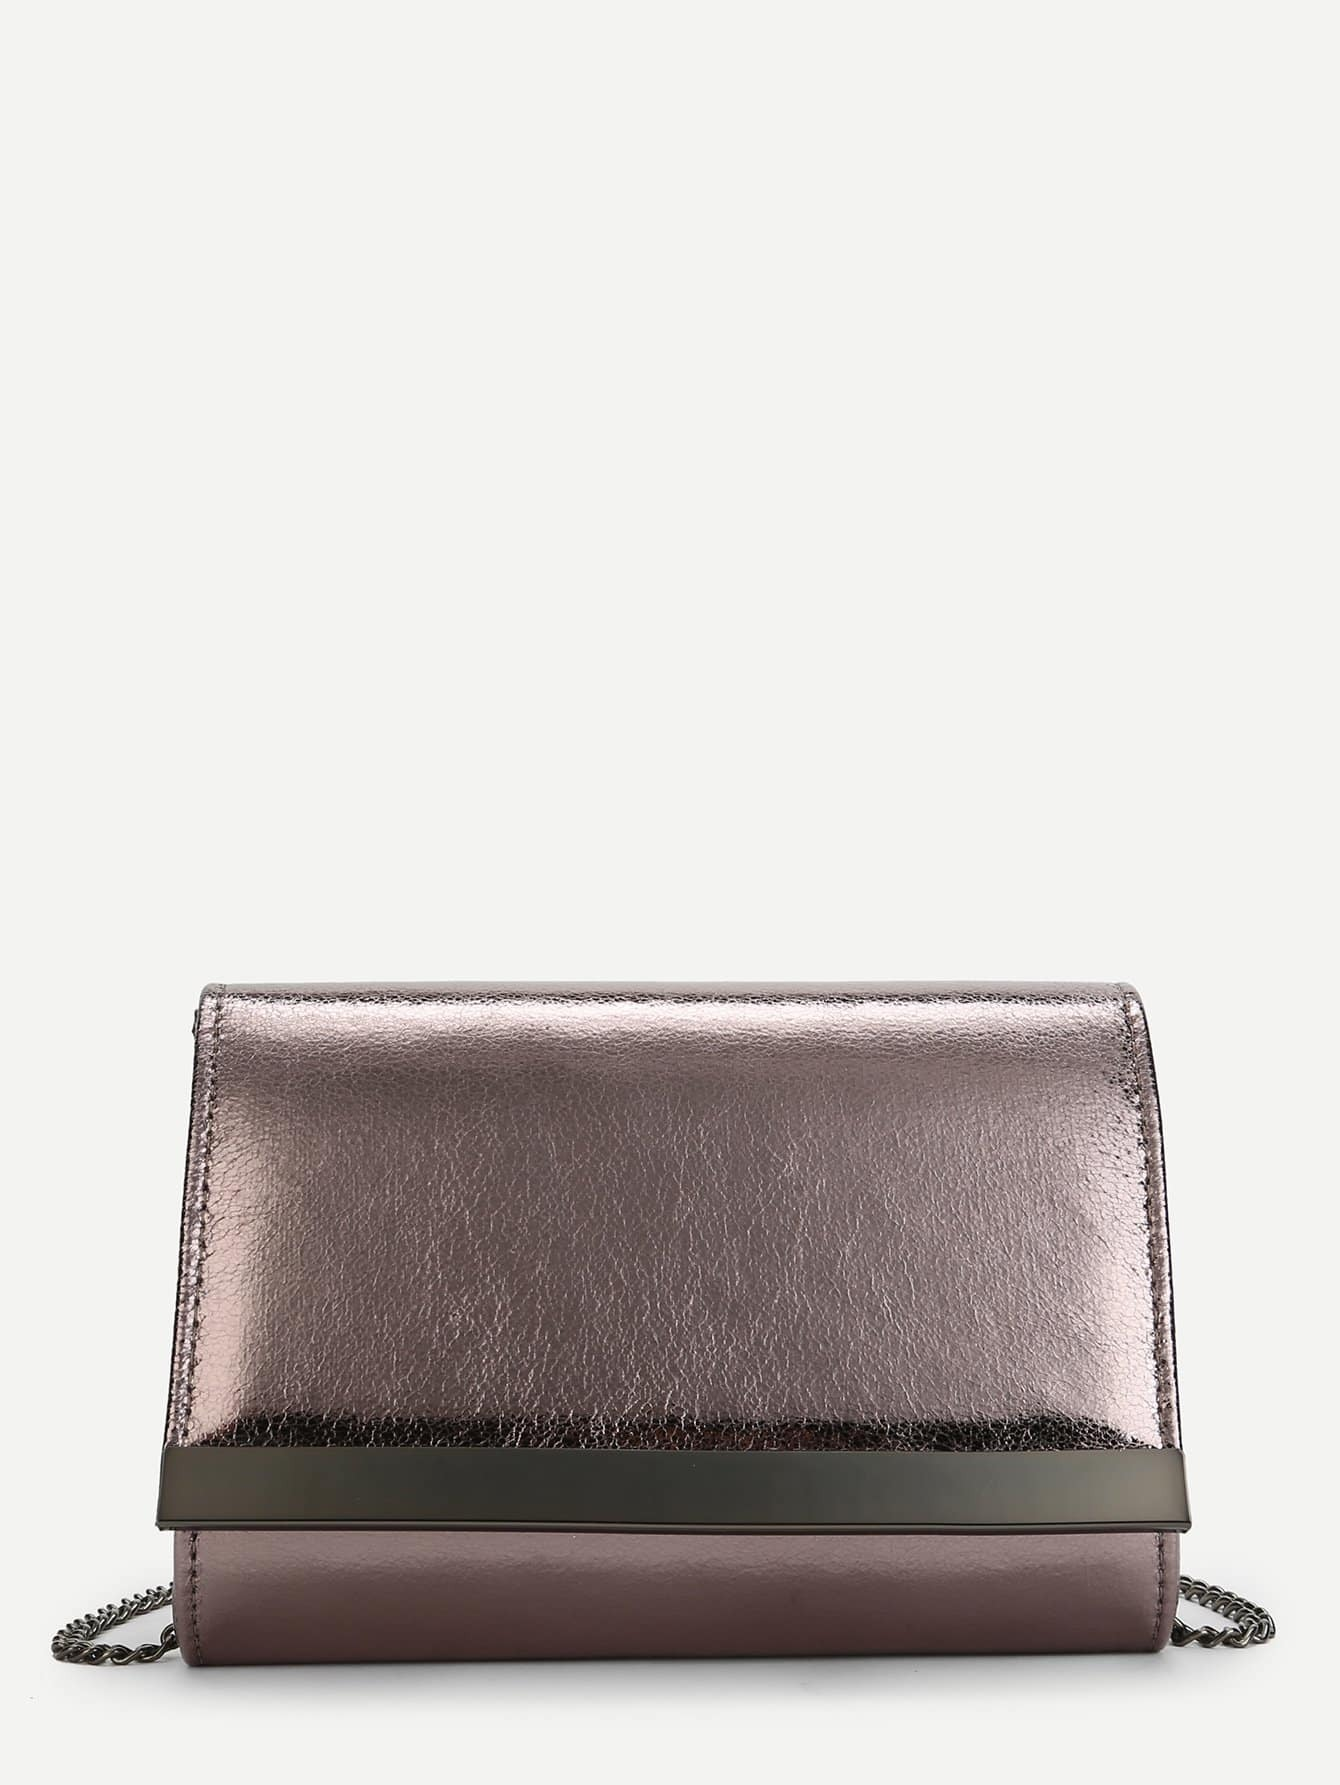 Фото - Flap PU Clutch Bag With Chain evening clutch bag wood rectangle chain wallet travel shoulder